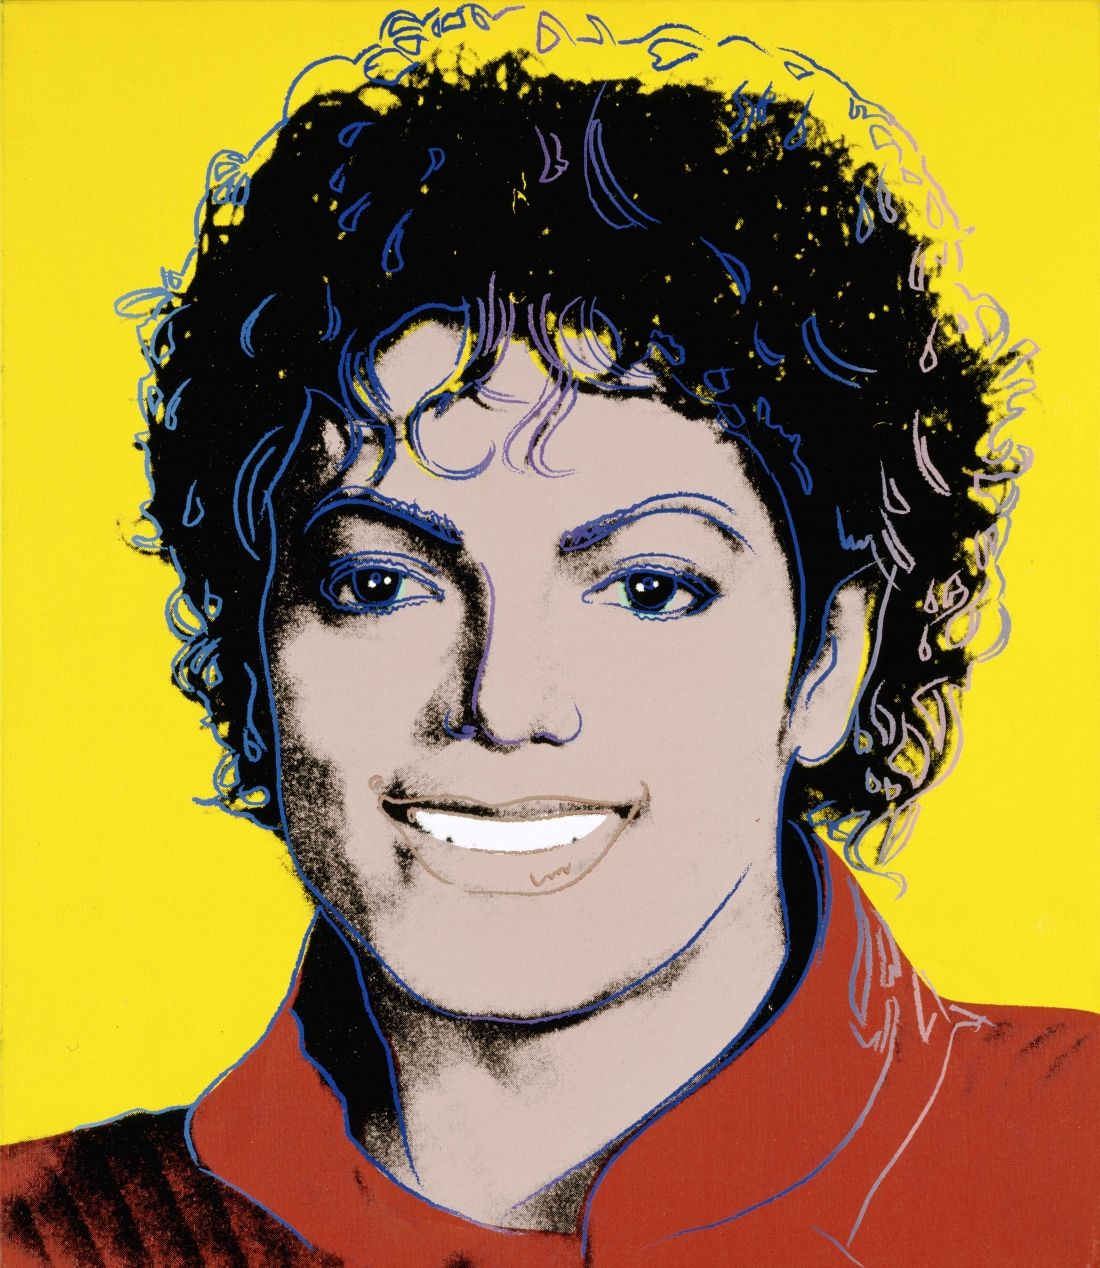 Michael Jackson by Andy Warhol 1984. National Portrait